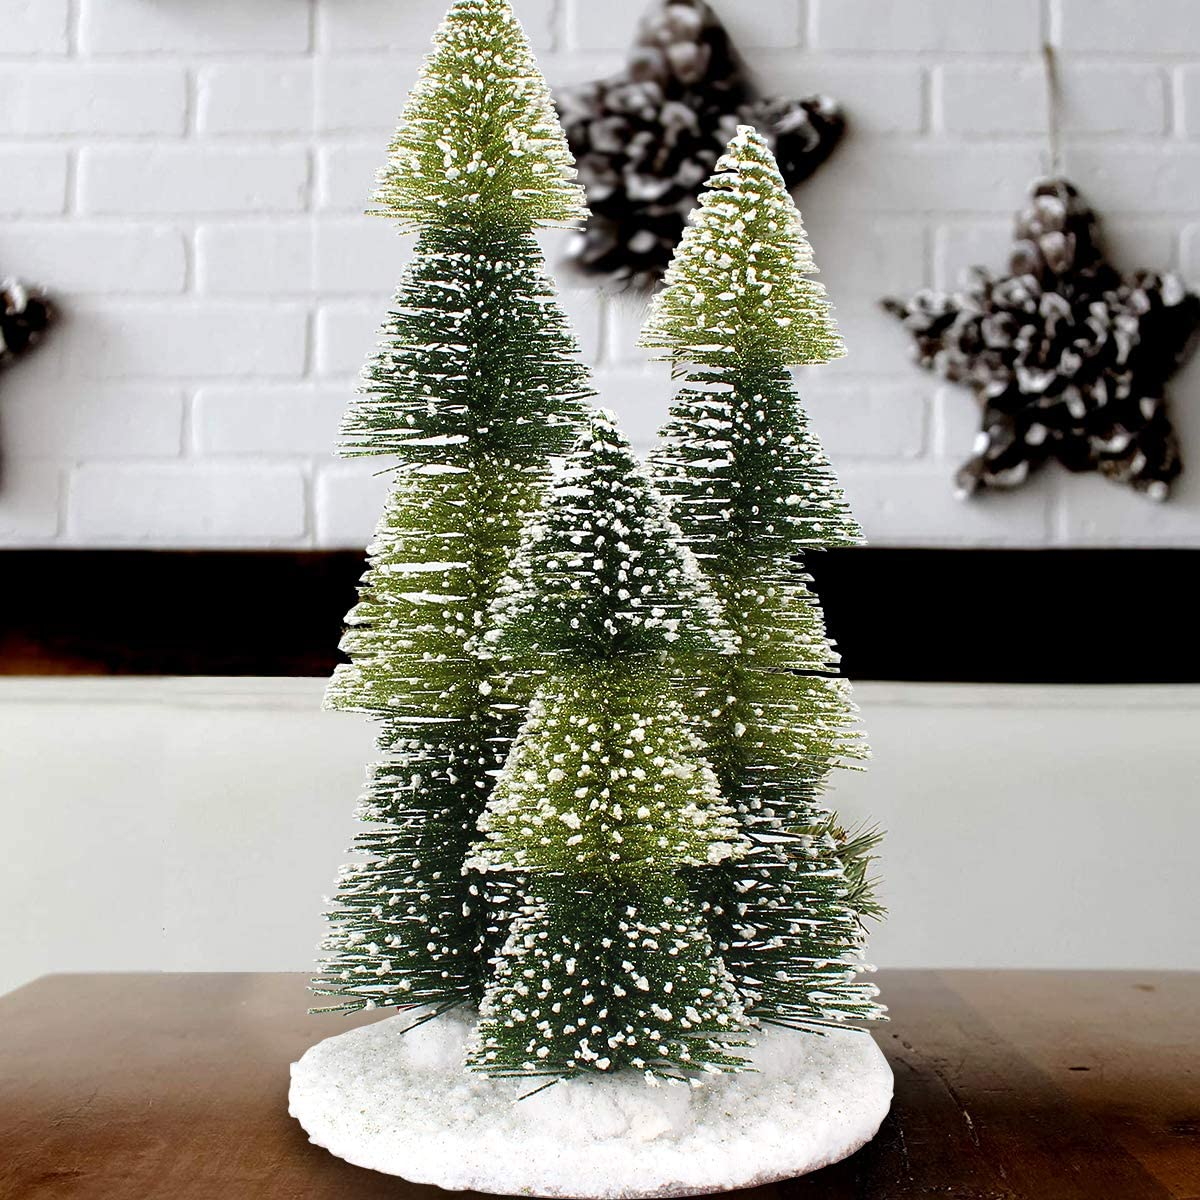 "Mini Christmas Tree, 3 in 1 Artificial Small Pine Tree Plastic Winter Snow Ornaments Tabletop Trees Decor 12""/30cm with Wooden Bases for Xmas Holiday Party Home Tabletop Tree"